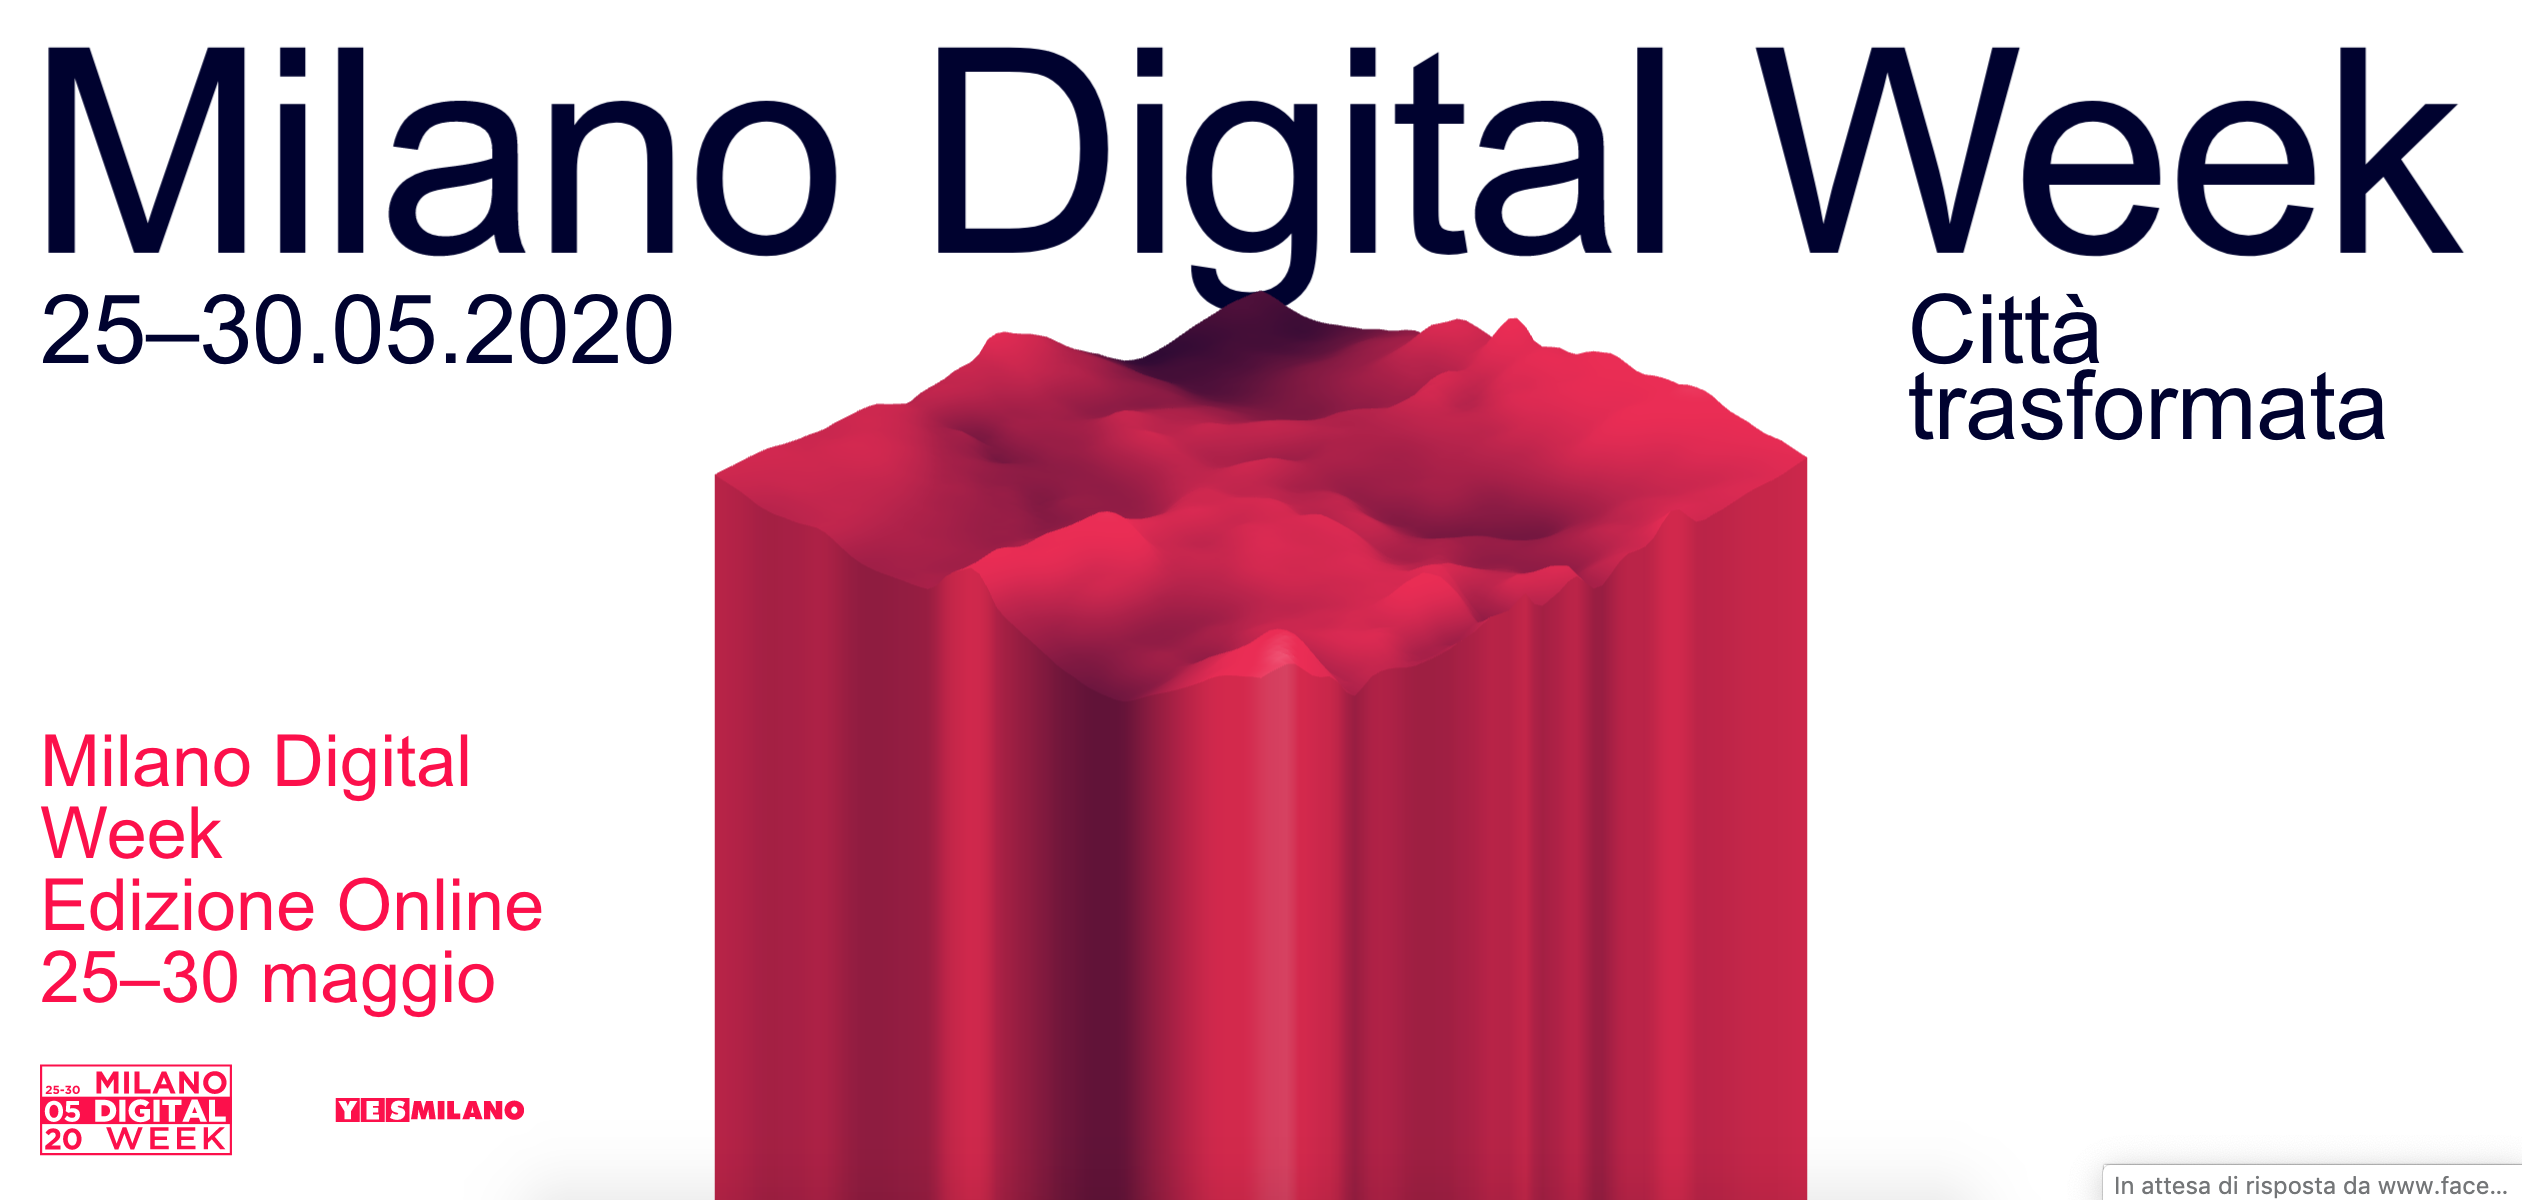 Cisco sarà partner della Milano Digital Week thumbnail